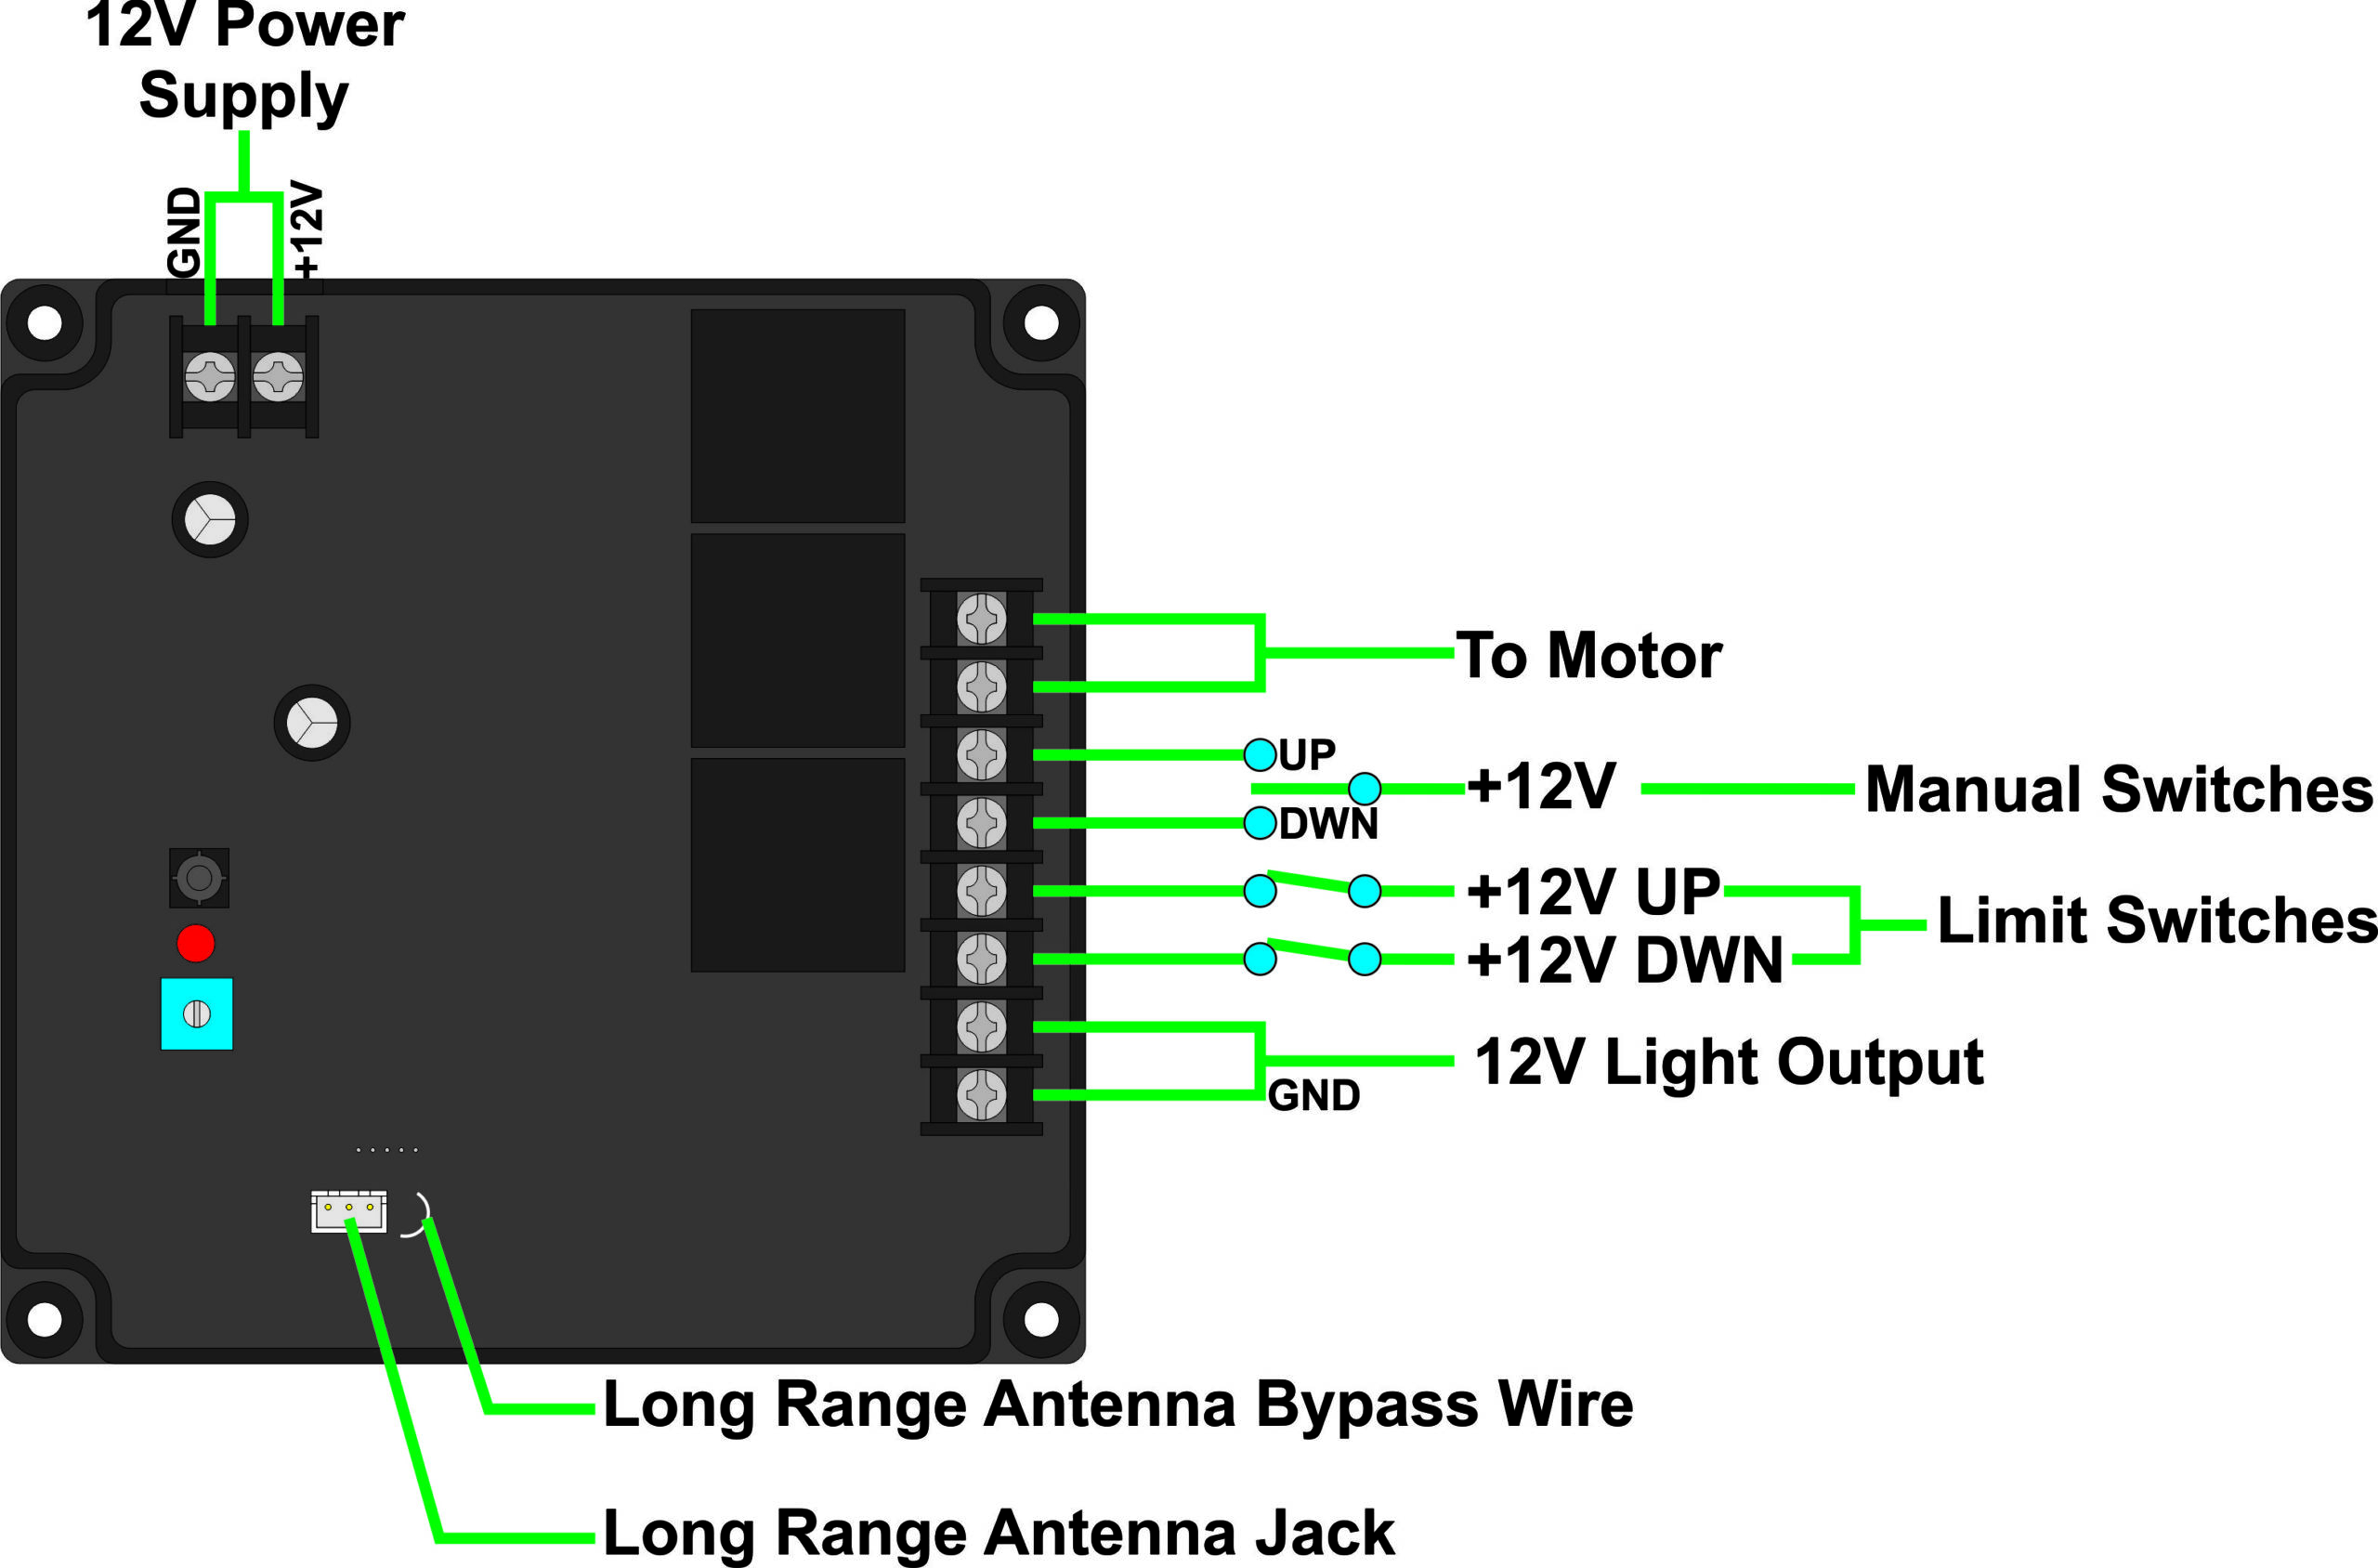 linear actuator limit switch wiring diagram with 12vdc Limit Switch Wiring Diagrams on A Remote For Winch With Limit Switch Wiring Diagram additionally Asco Limit Switch Wiring Diagram likewise Linear Actuator Wiring Diagram furthermore External Limit Switch Kit For Actuators additionally Double Switch Wiring Diagram Dc.